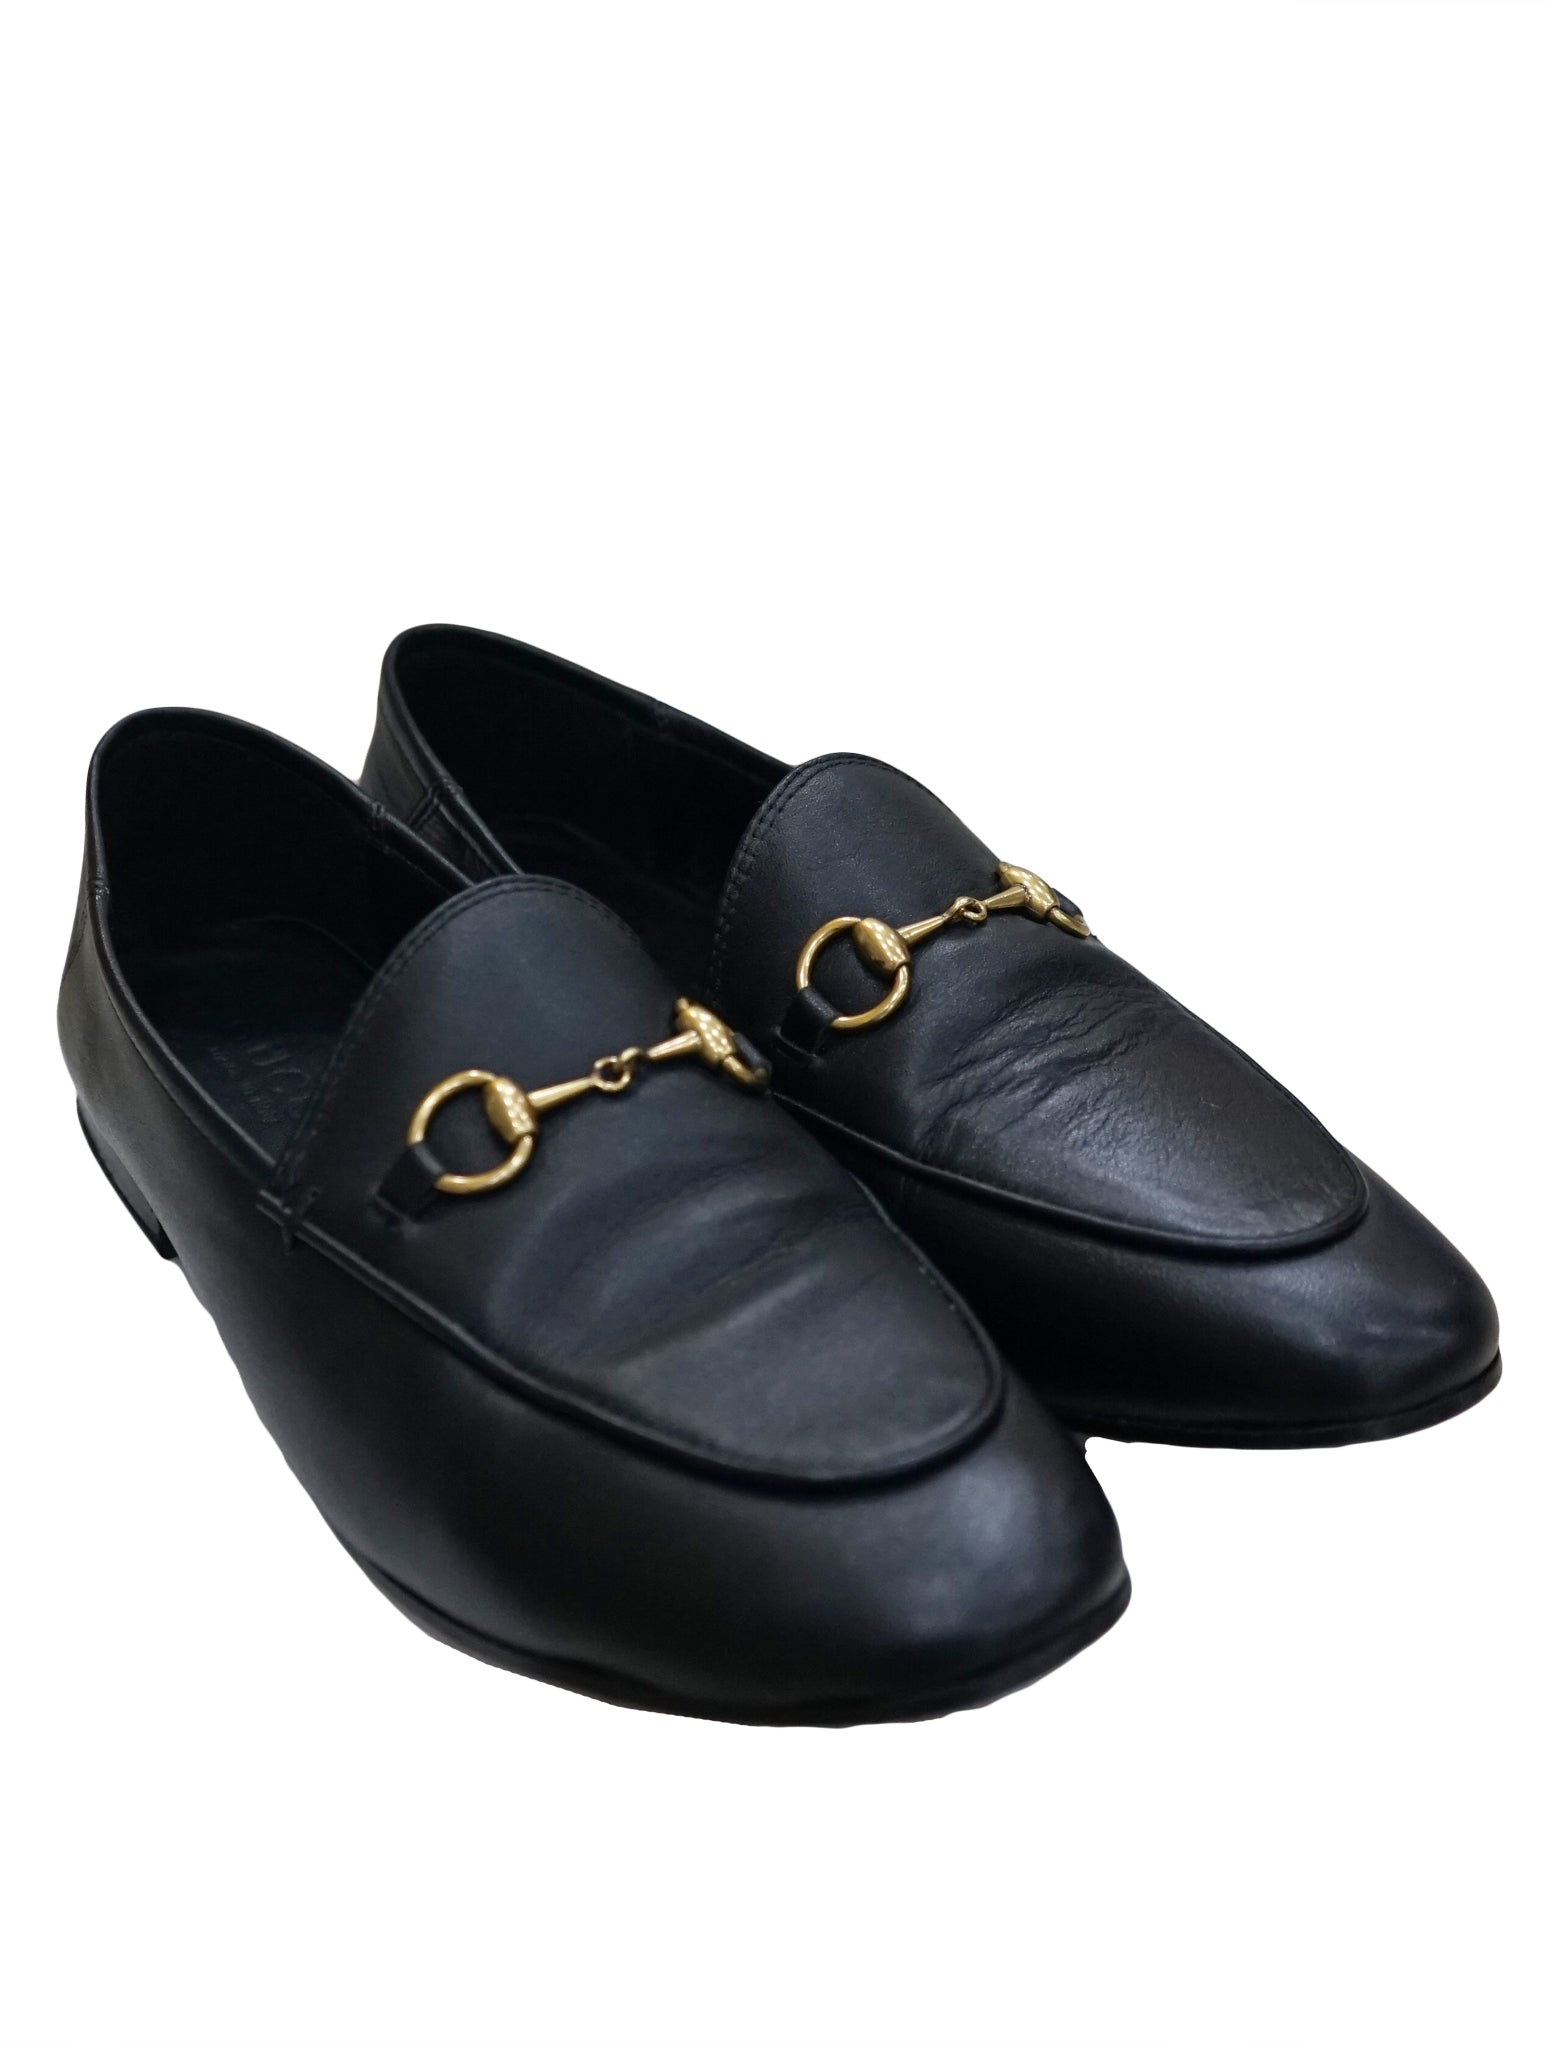 3cc9651063f GUCCI JORDAAN LEATHER HORSEBIT LOAFERS – Kidsstyleforless